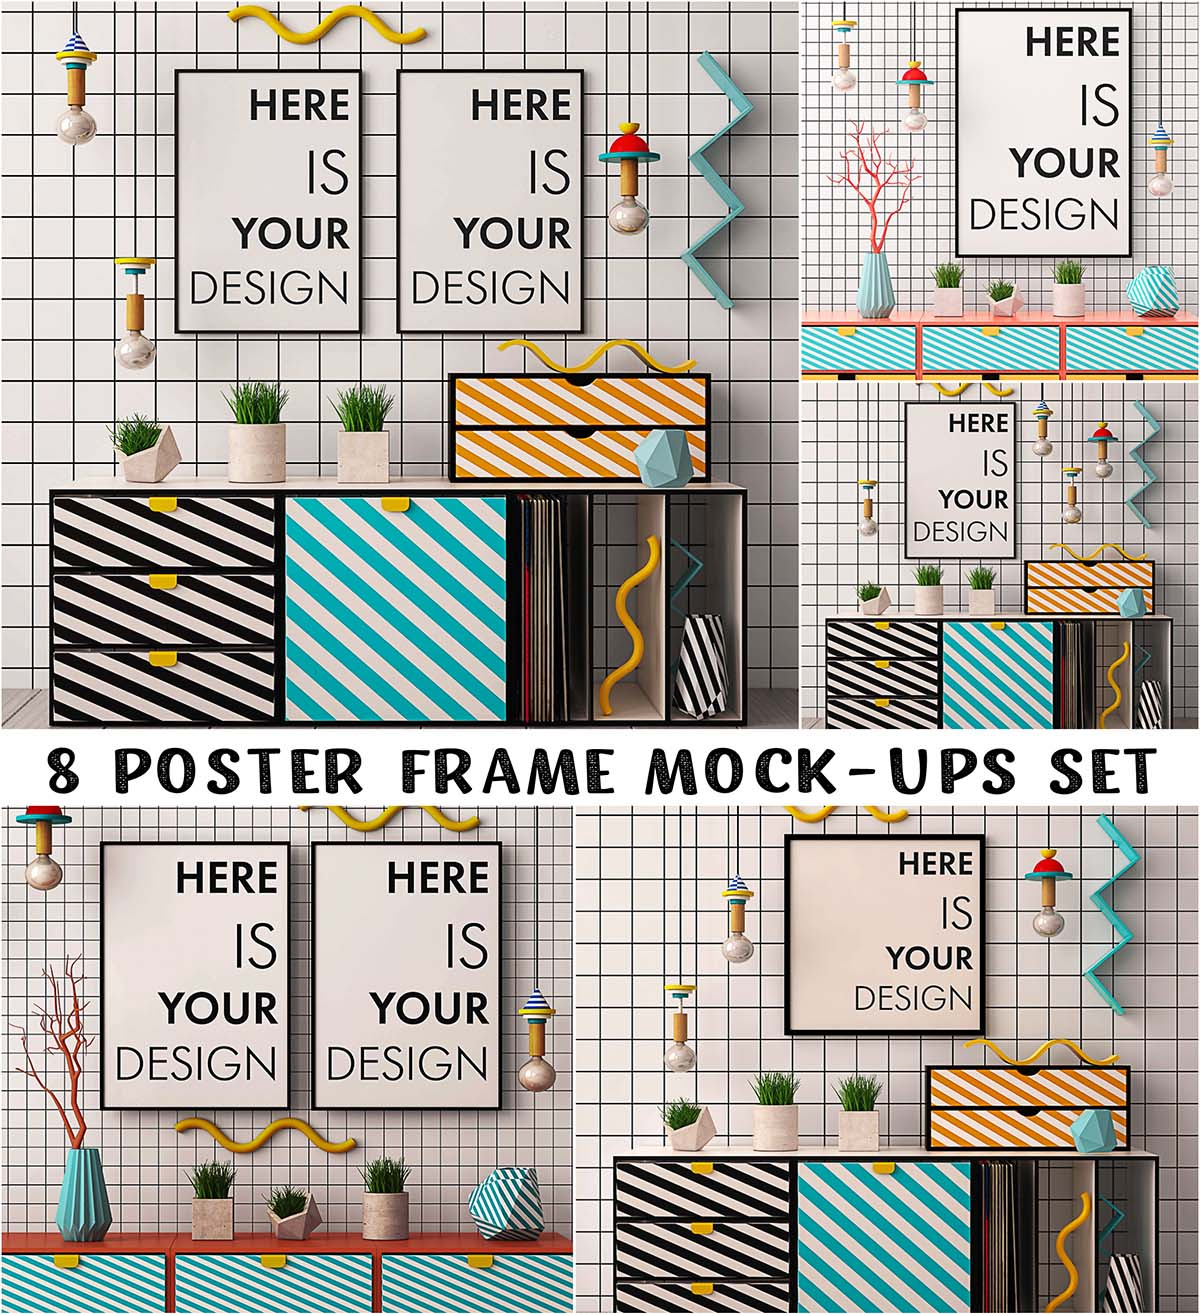 Mockups posters memphis style